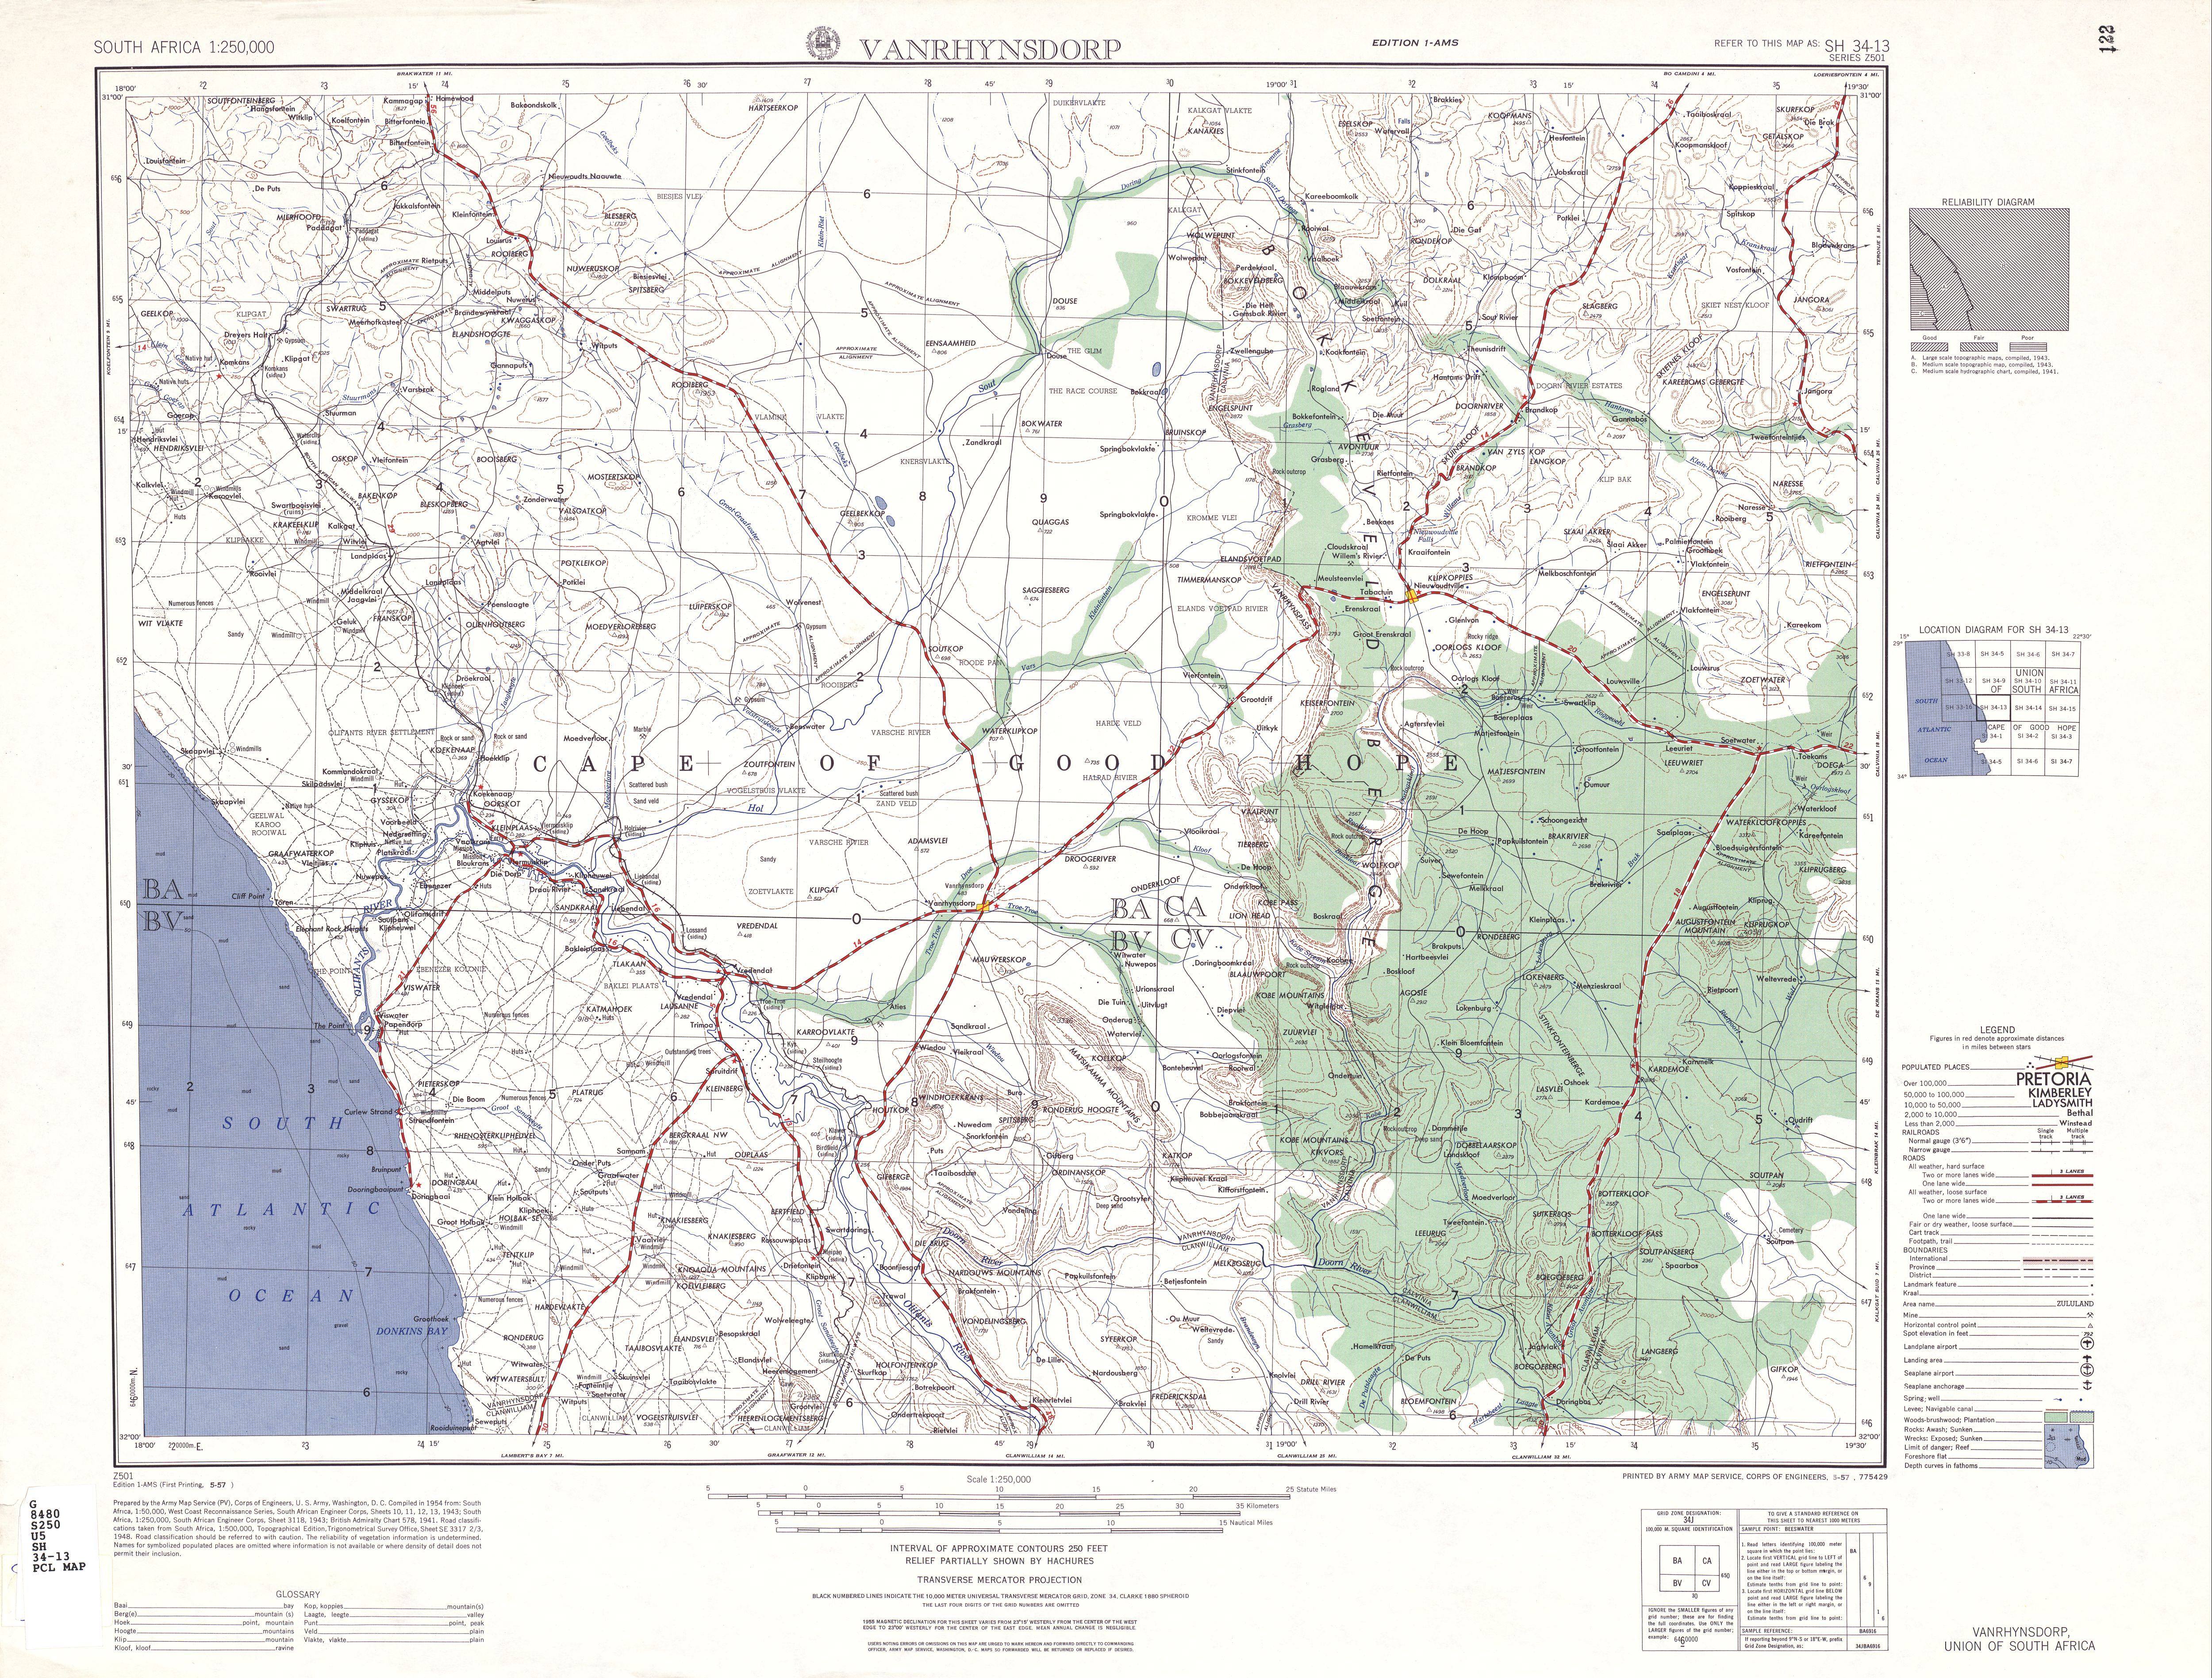 Vanrhynsdorp Topographic Map Sheet, Southern Africa 1954